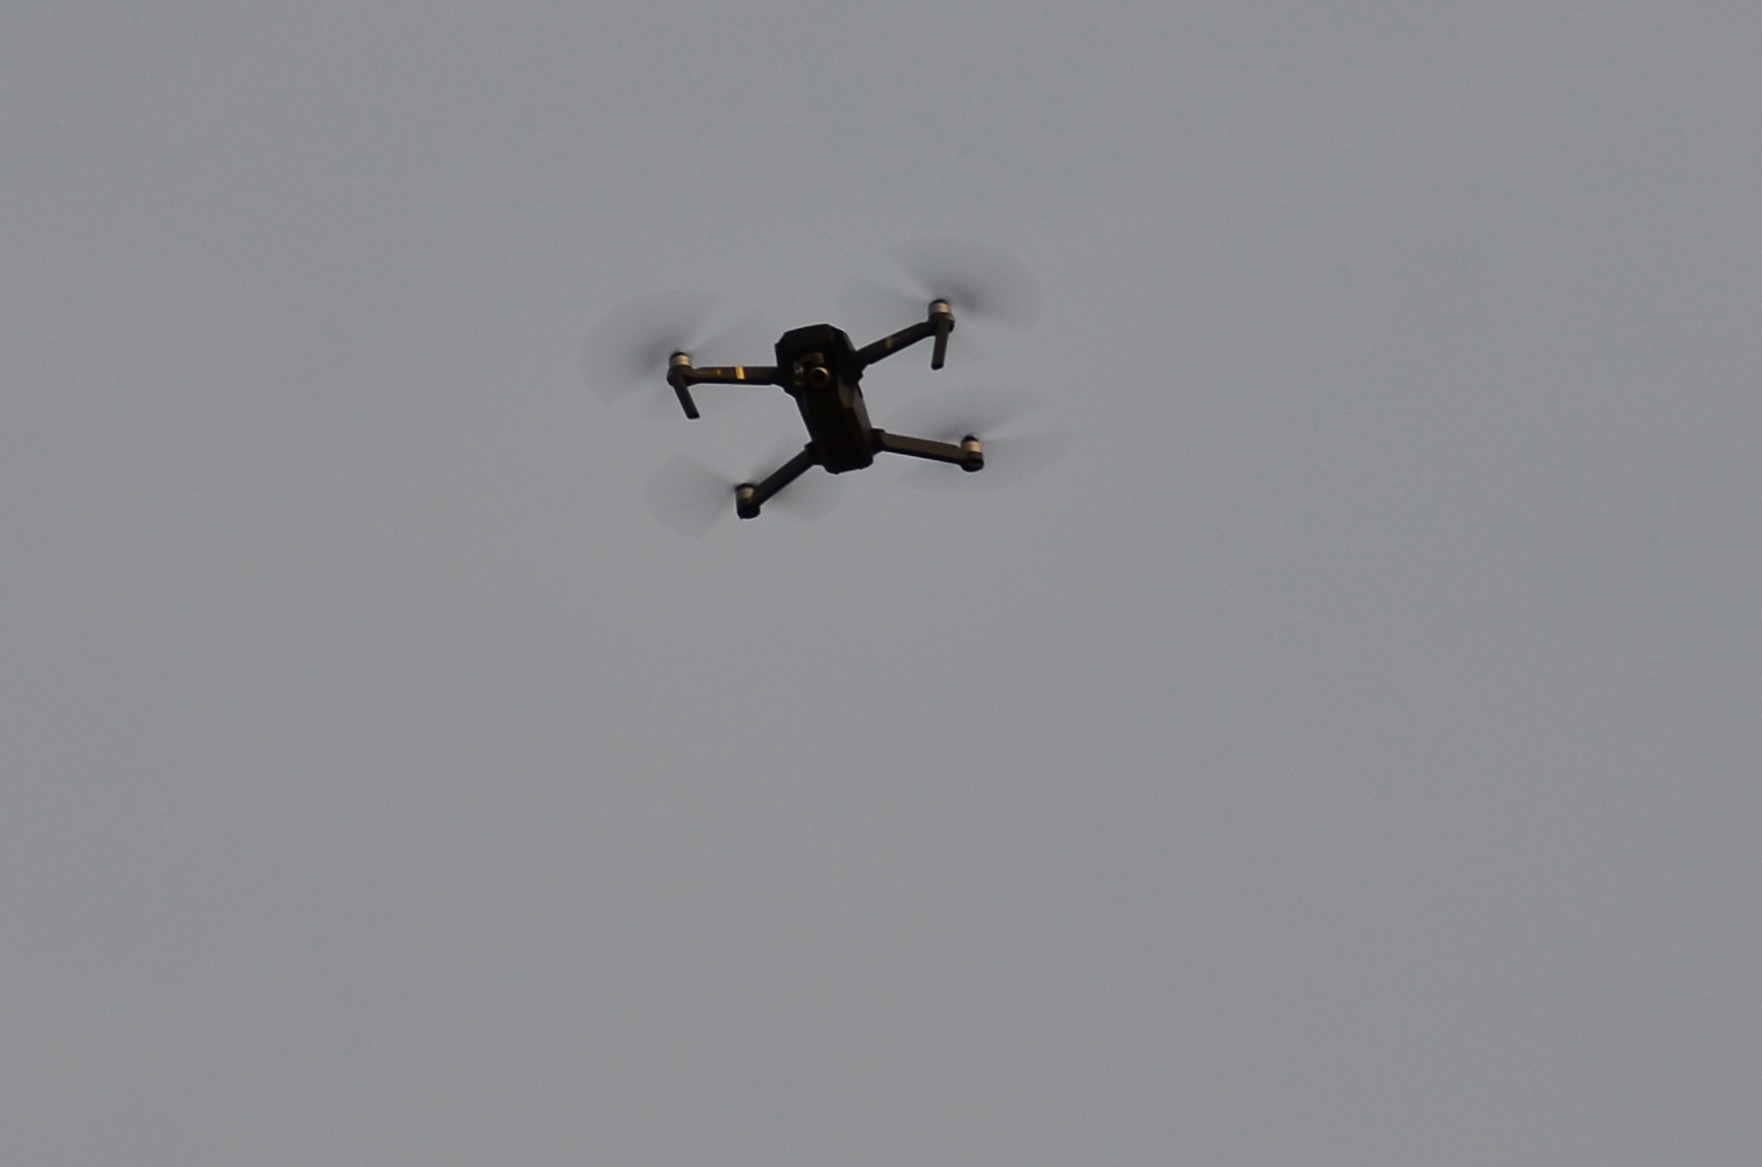 Little Drone Hovering